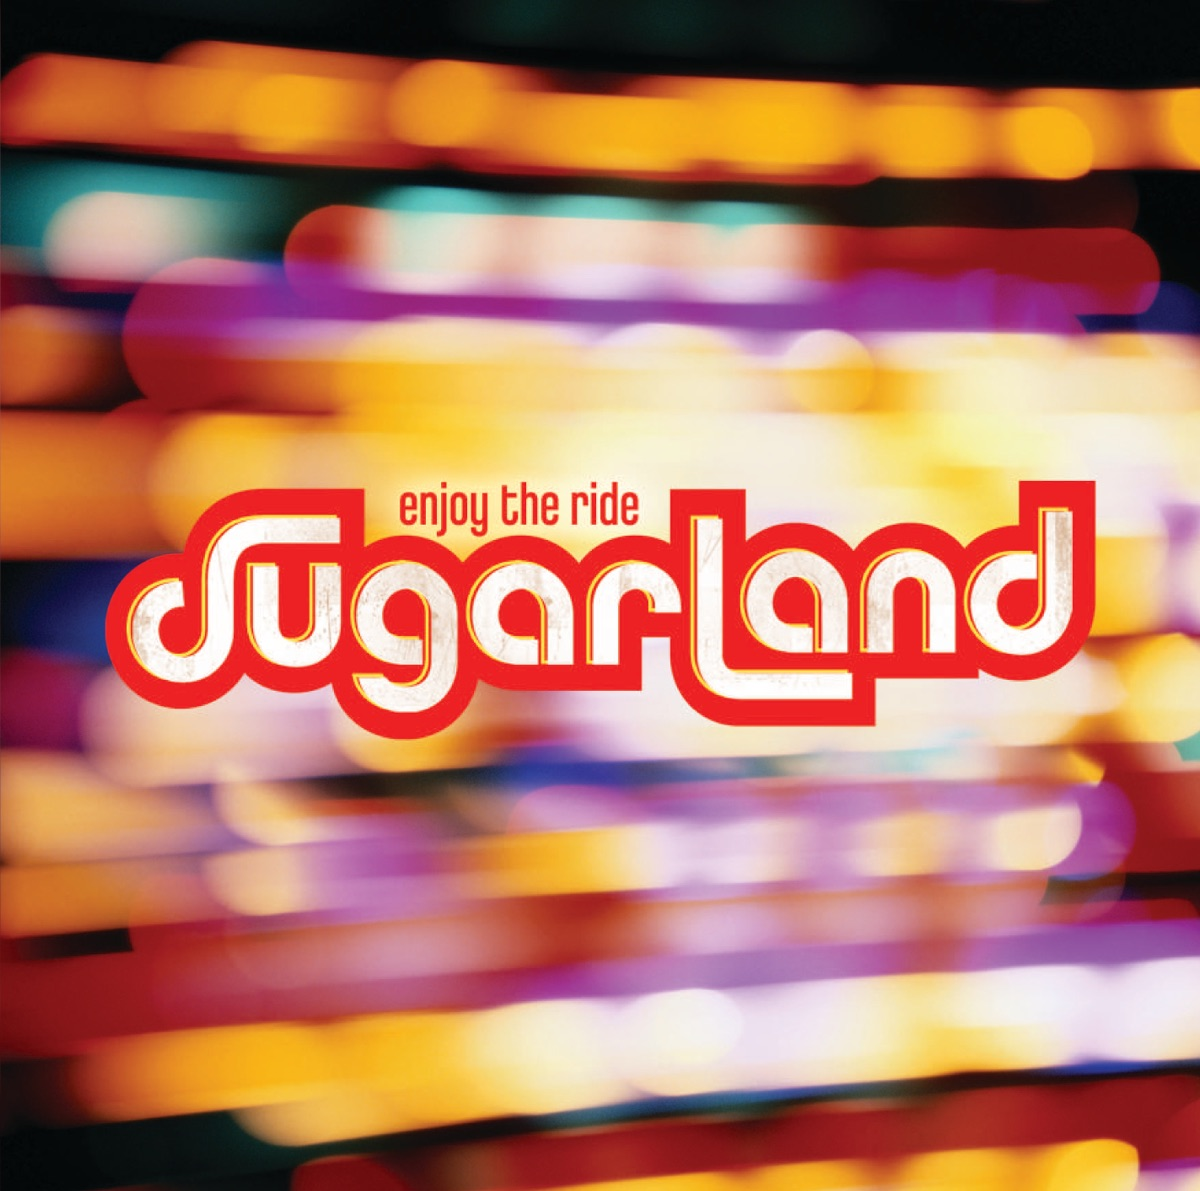 Enjoy the Ride Sugarland CD cover